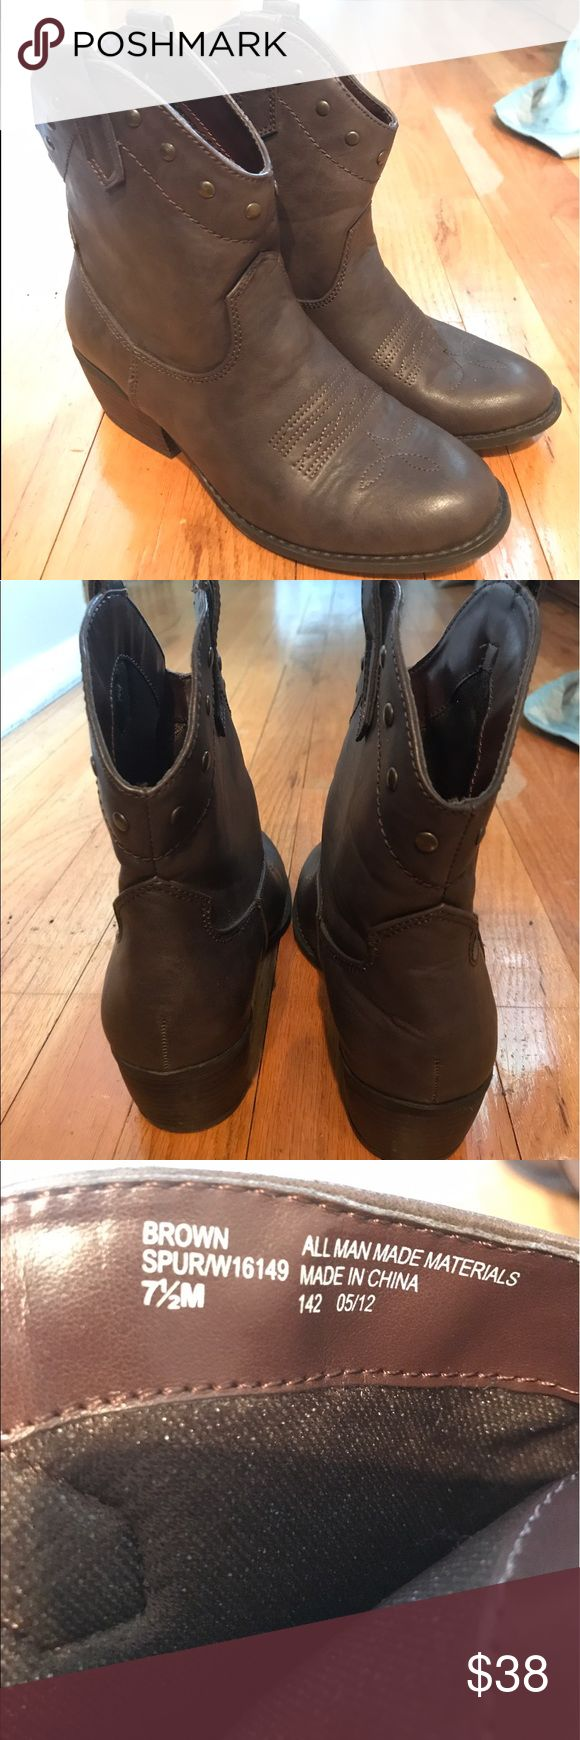 NWOB White Mountain Brown Boots Size 7.5 Brand new never been worn White Mountain Brown Boots Size 7.5 white mountain Shoes Ankle Boots & Booties